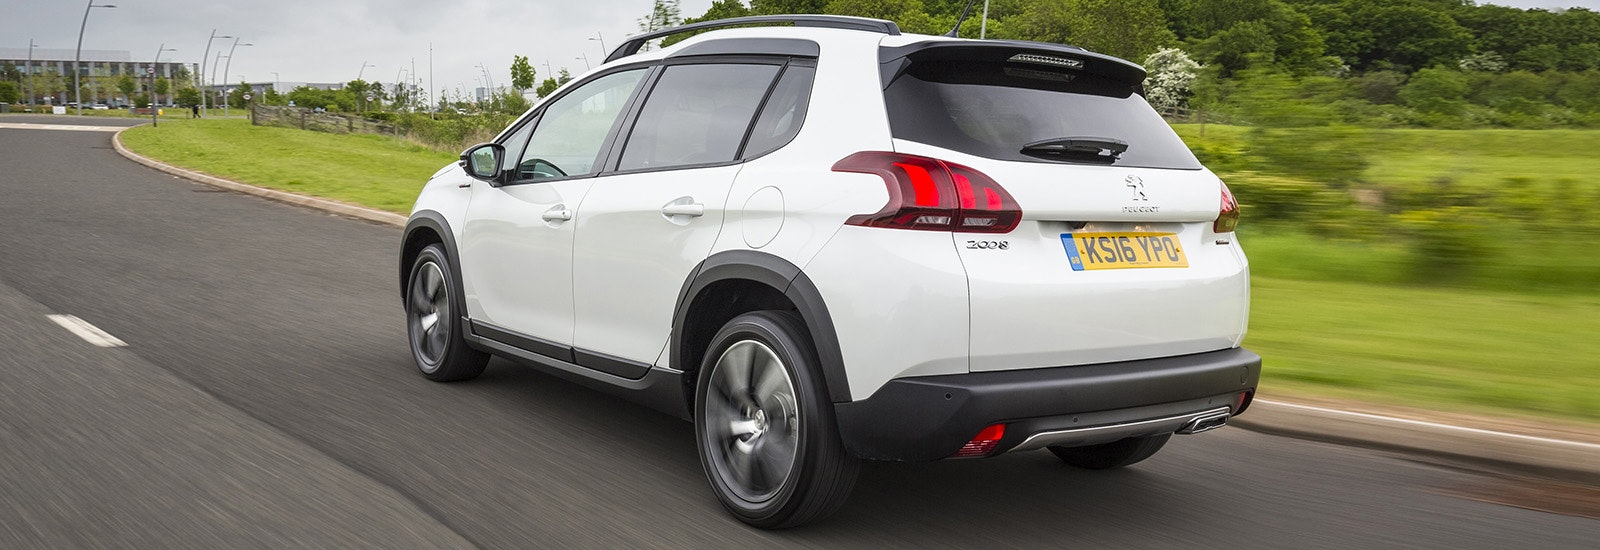 peugeot 2008 size and dimensions guide | carwow